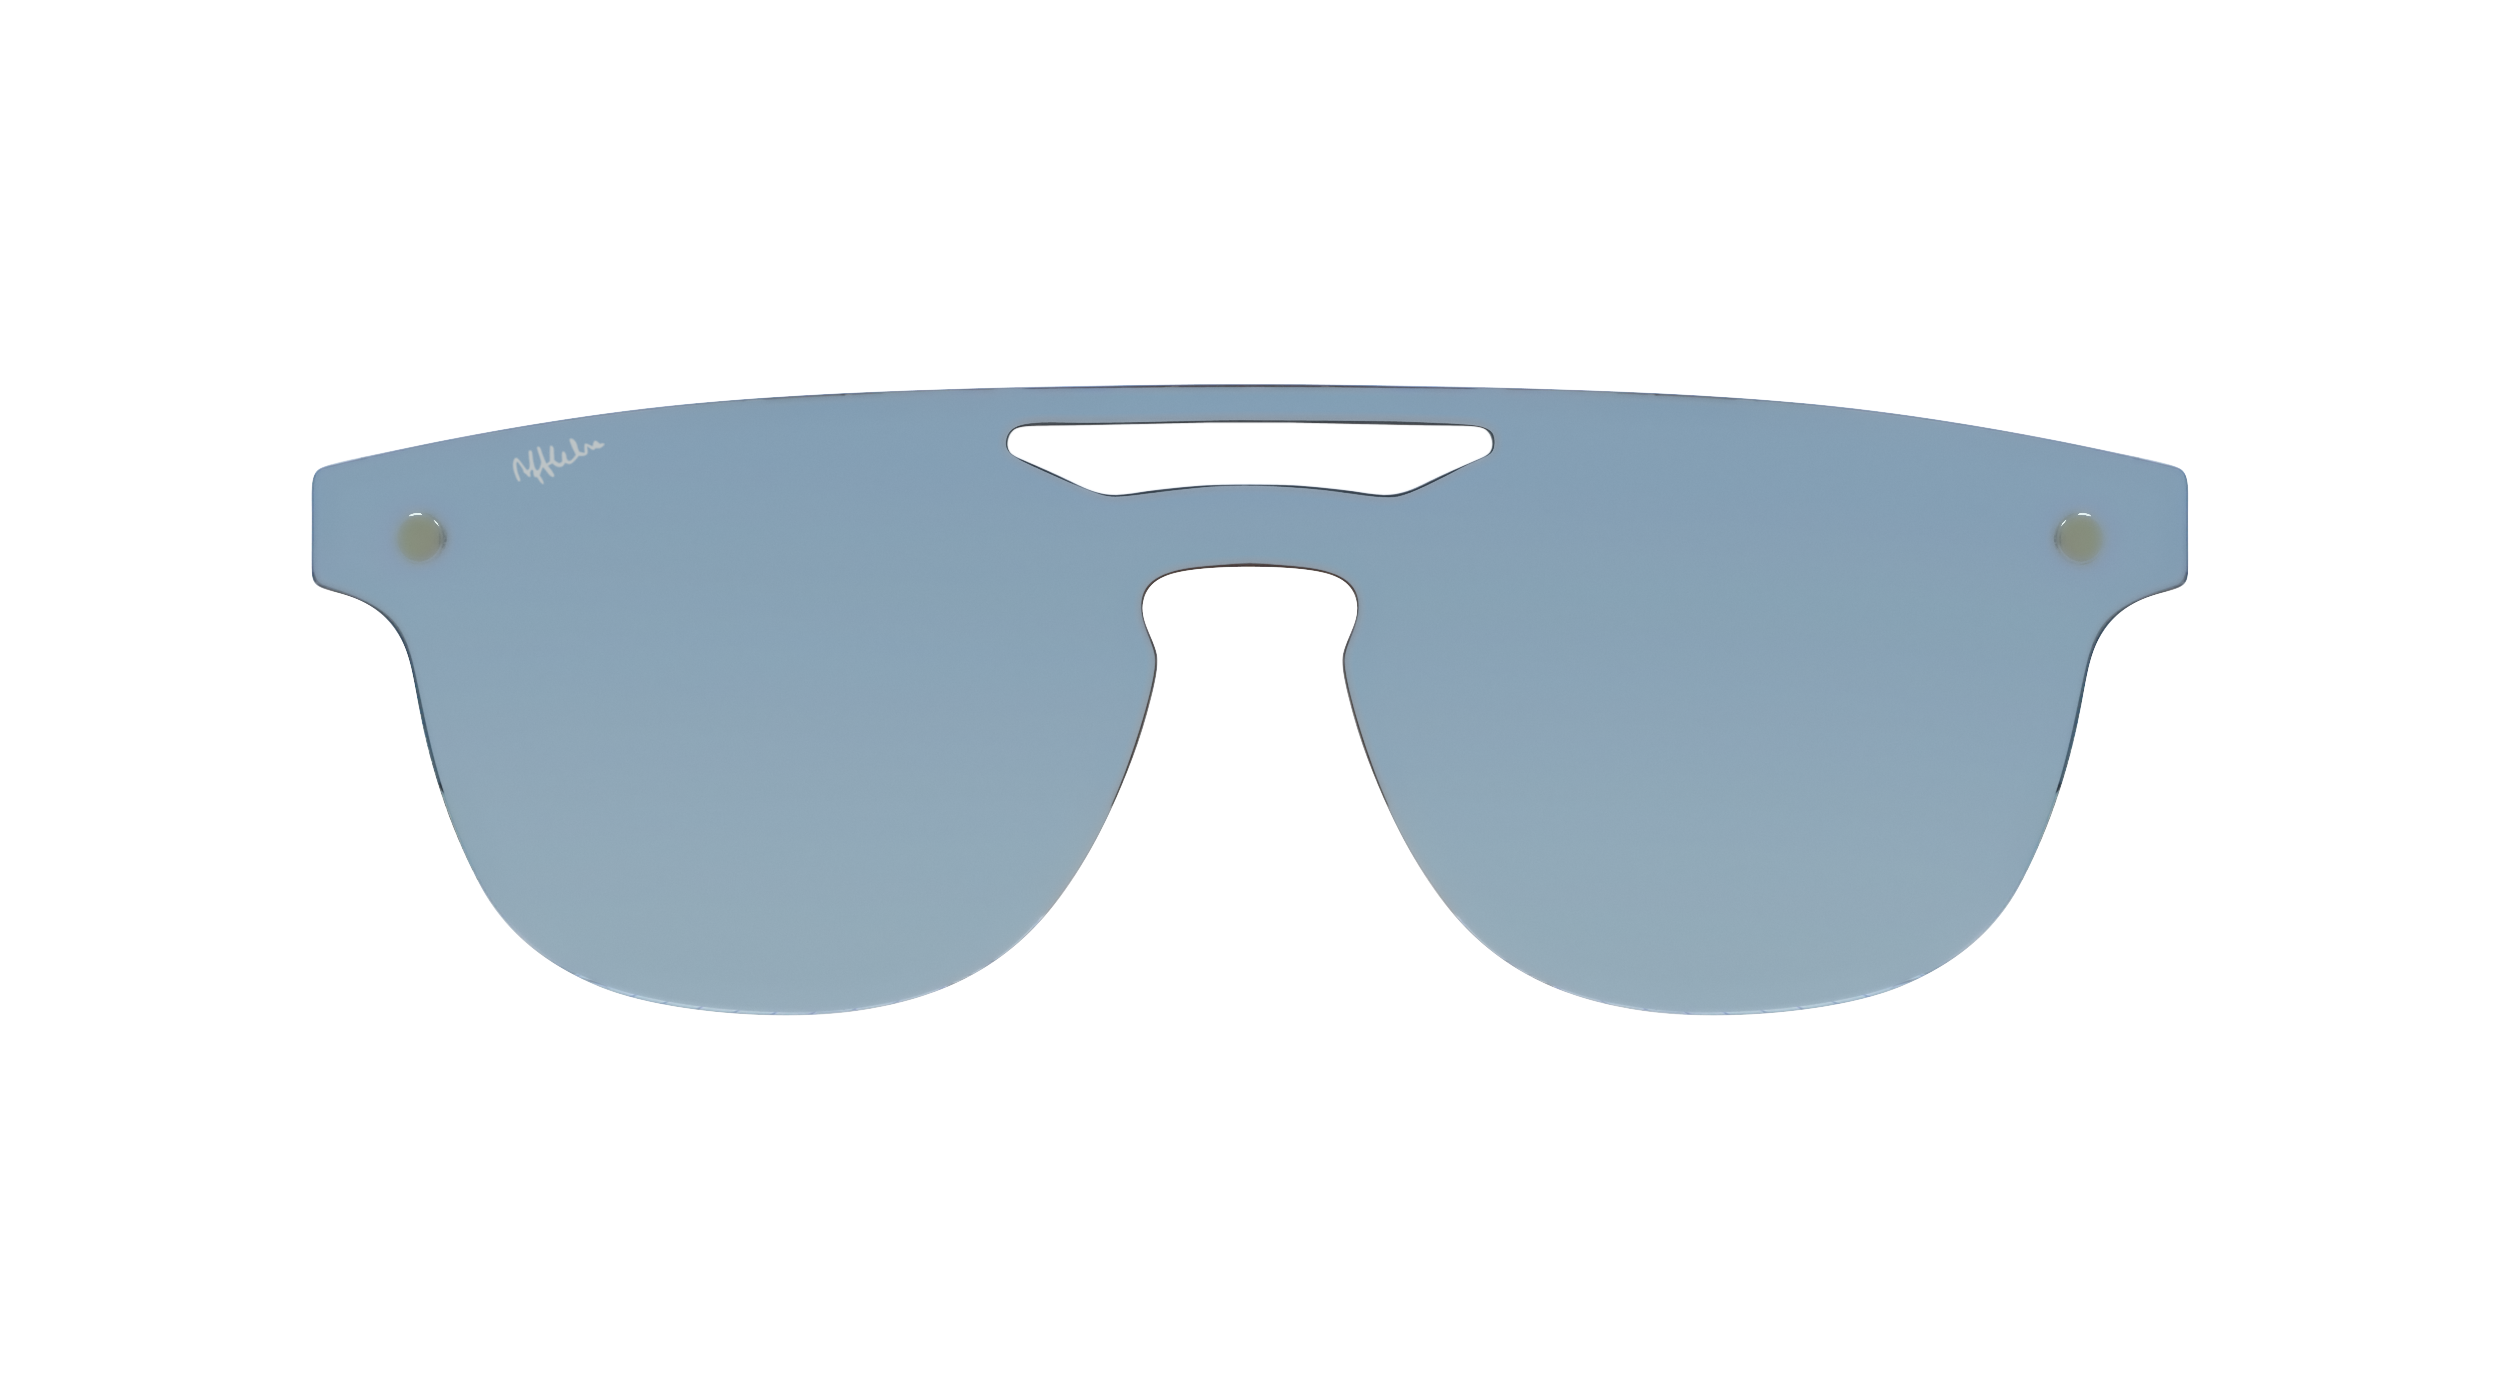 afflelou/france/products/smart_clip/clips_glasses/07630036452653.png